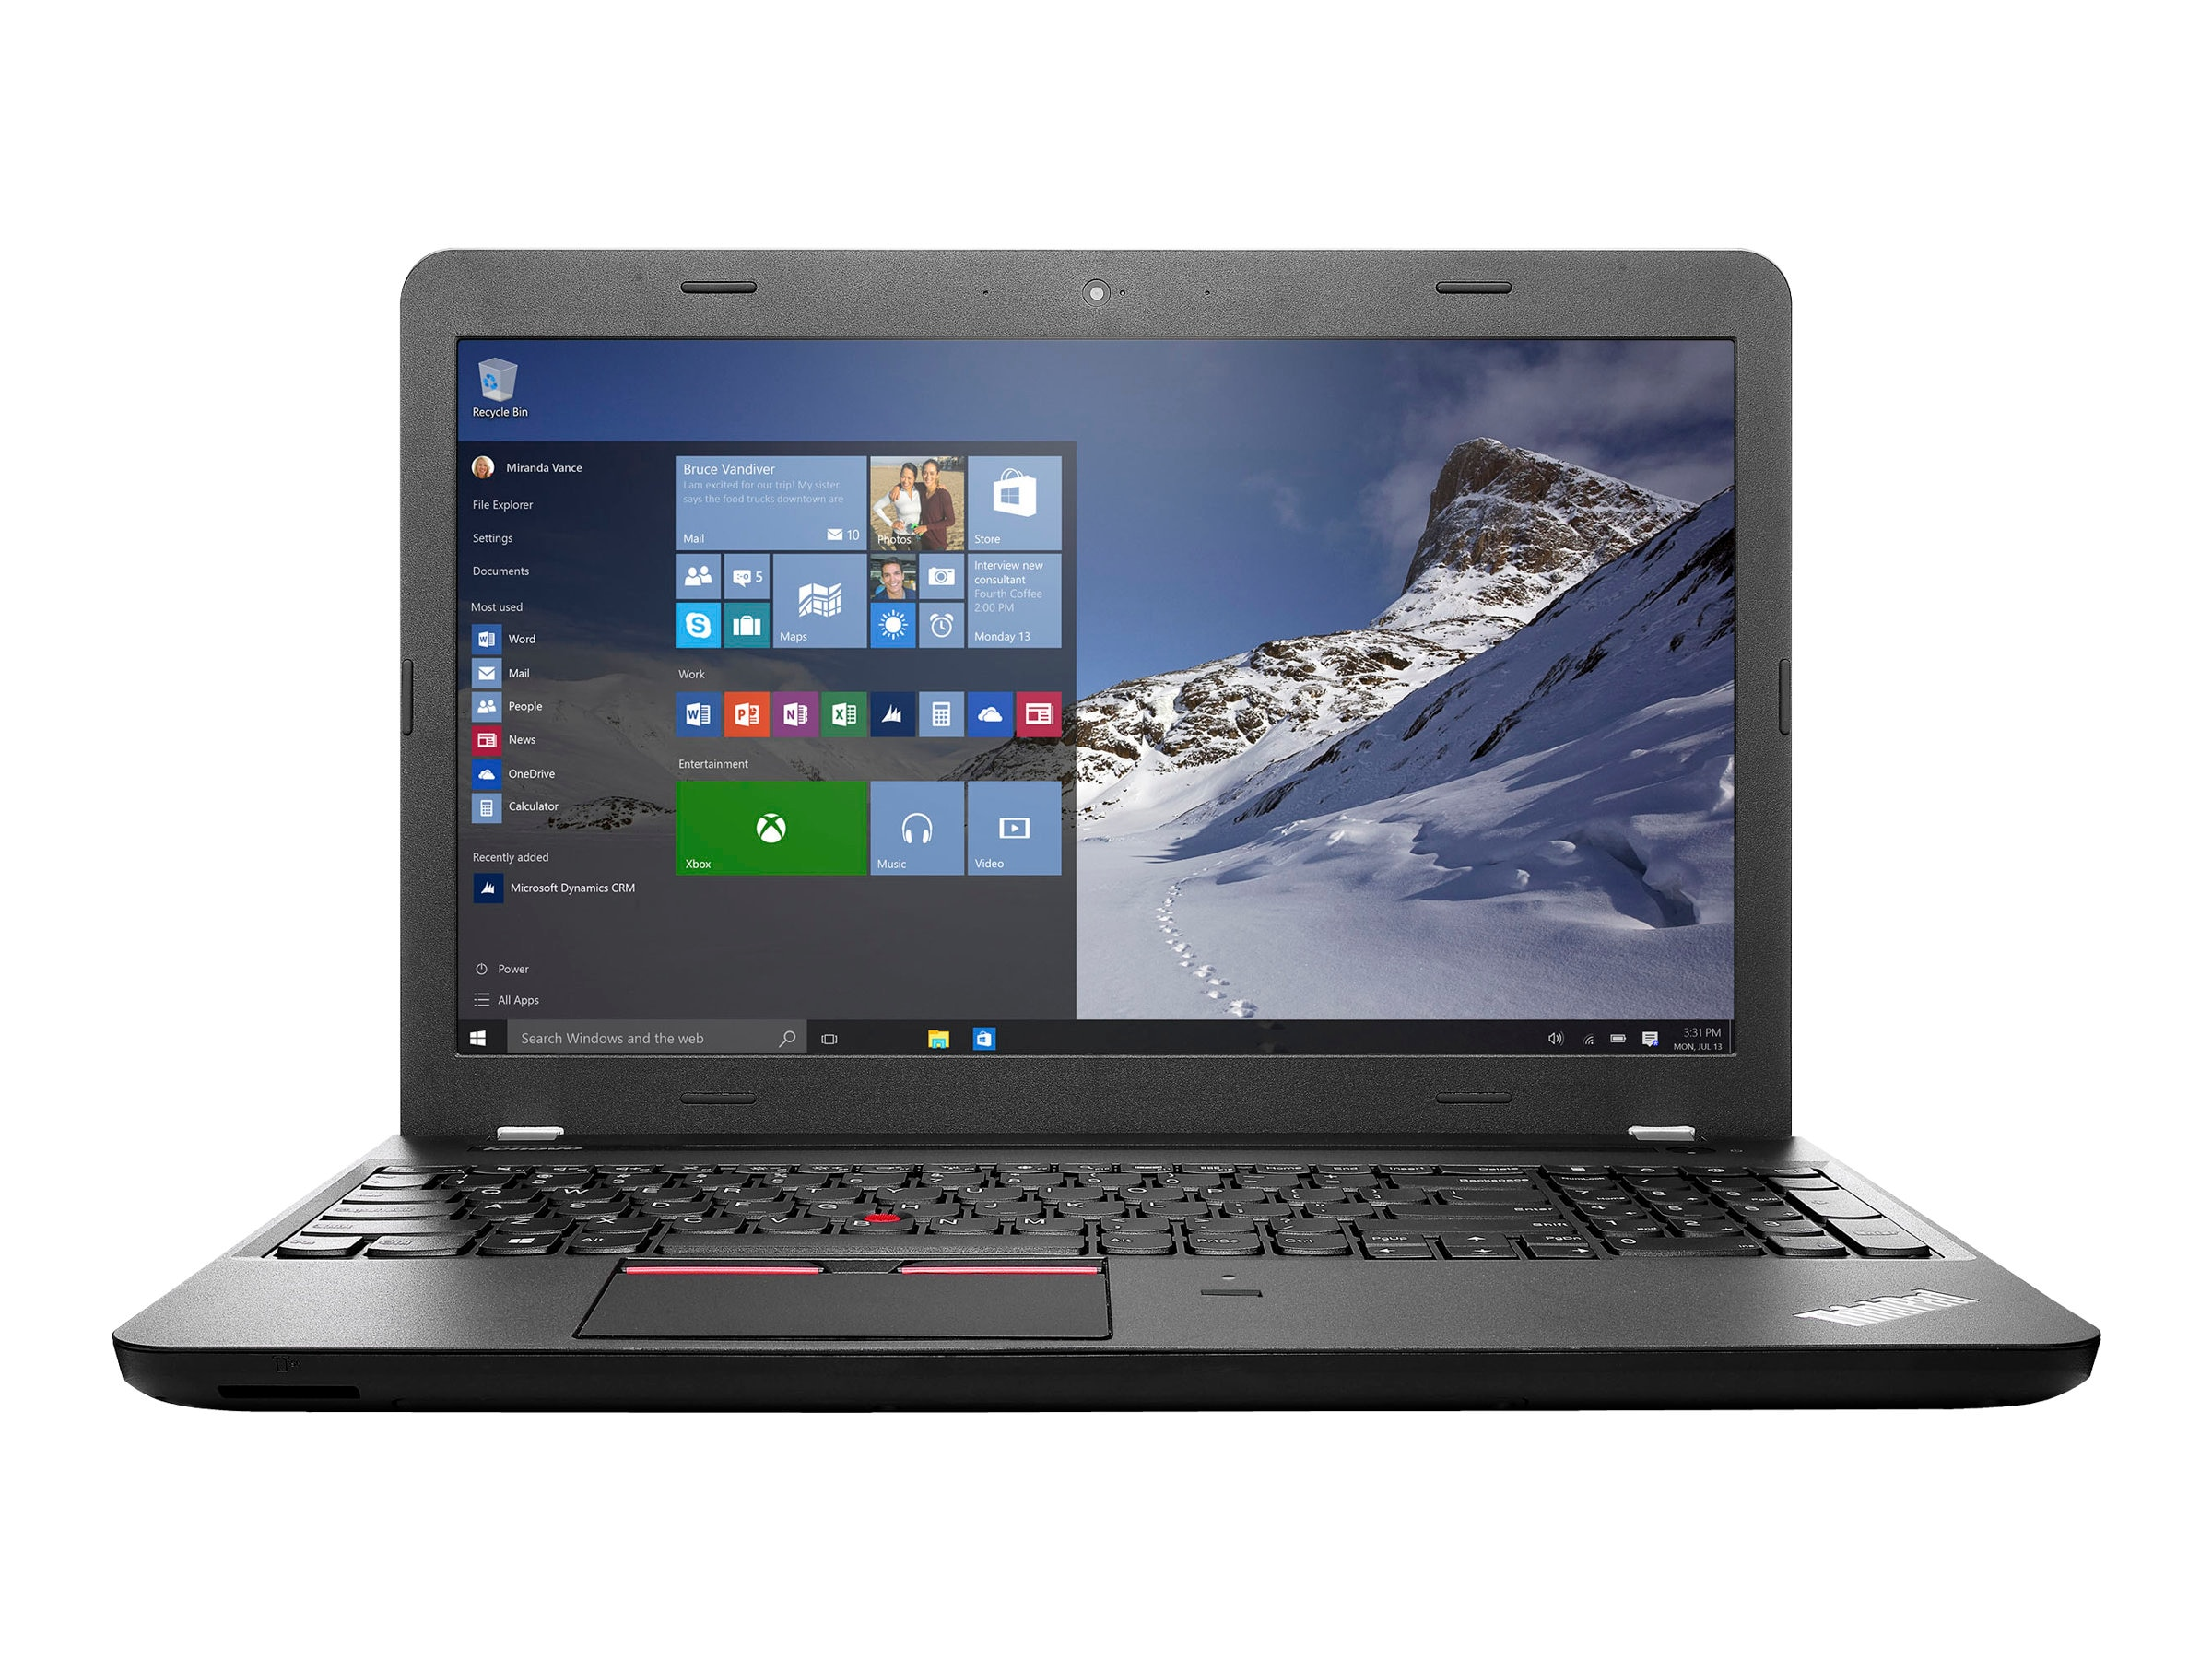 Lenovo TopSeller ThinkPad E560 2.3GHz Core i5 15.6in display